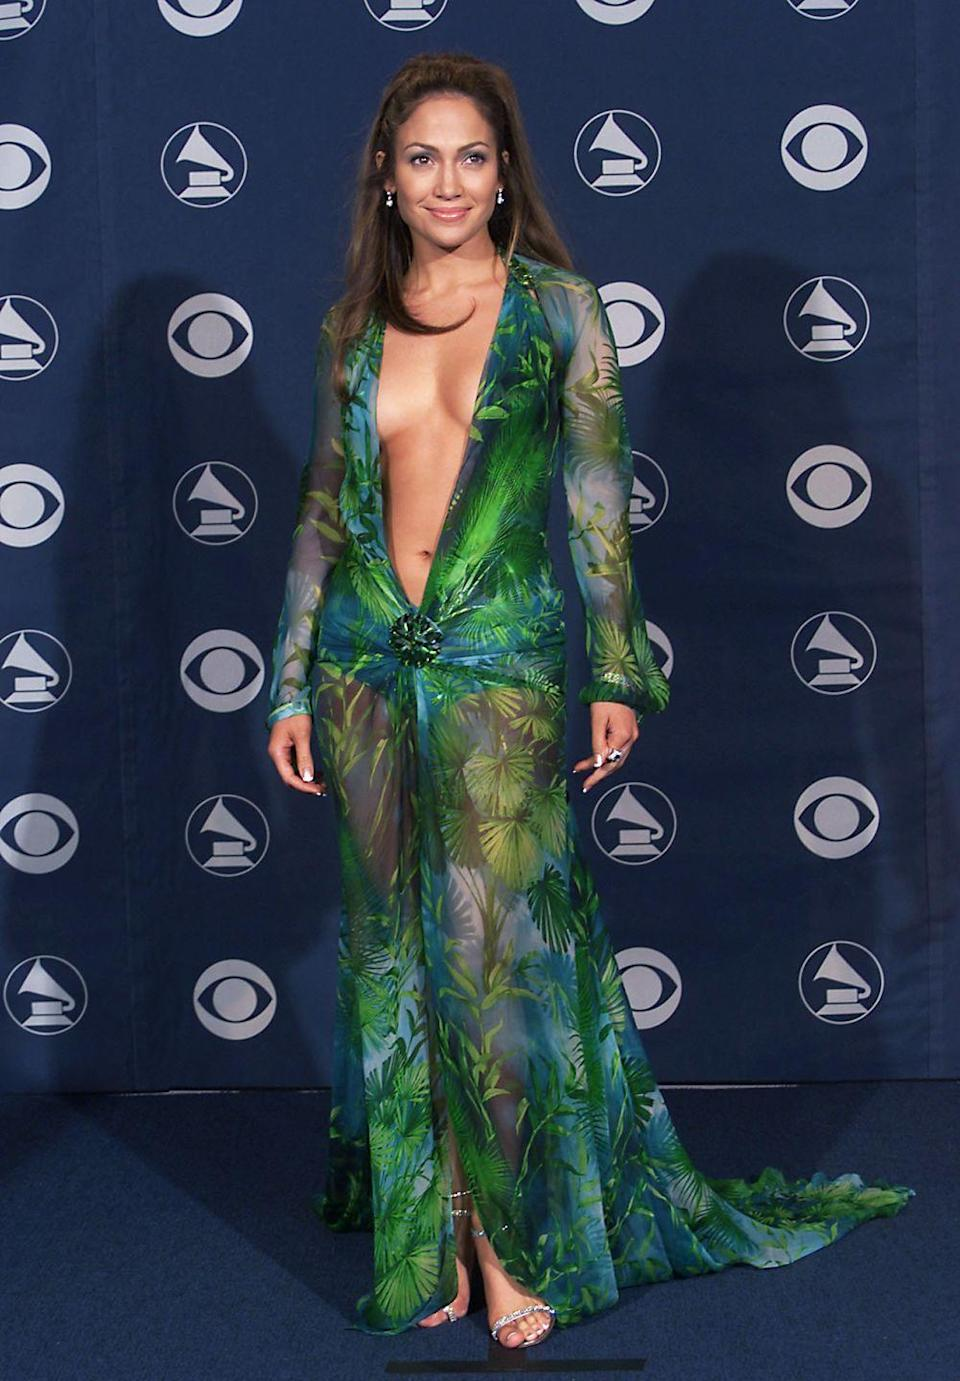 <p><strong>When: </strong>February 2000</p><p><strong>Where: </strong>The Grammys</p><p><strong>Wearing: </strong>Versace</p>